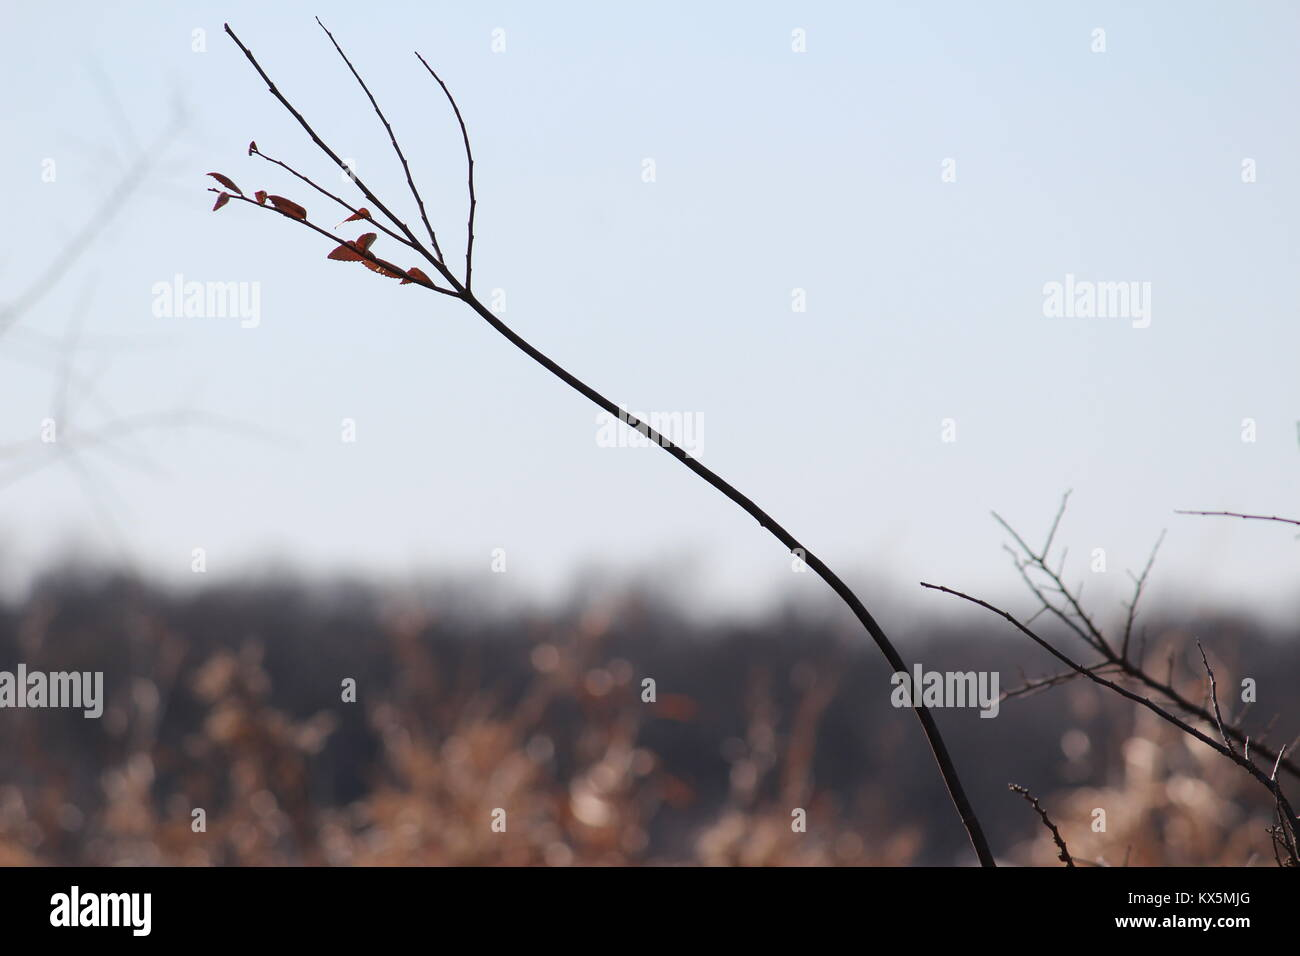 A dead plant with a blue sky in the background - Stock Image